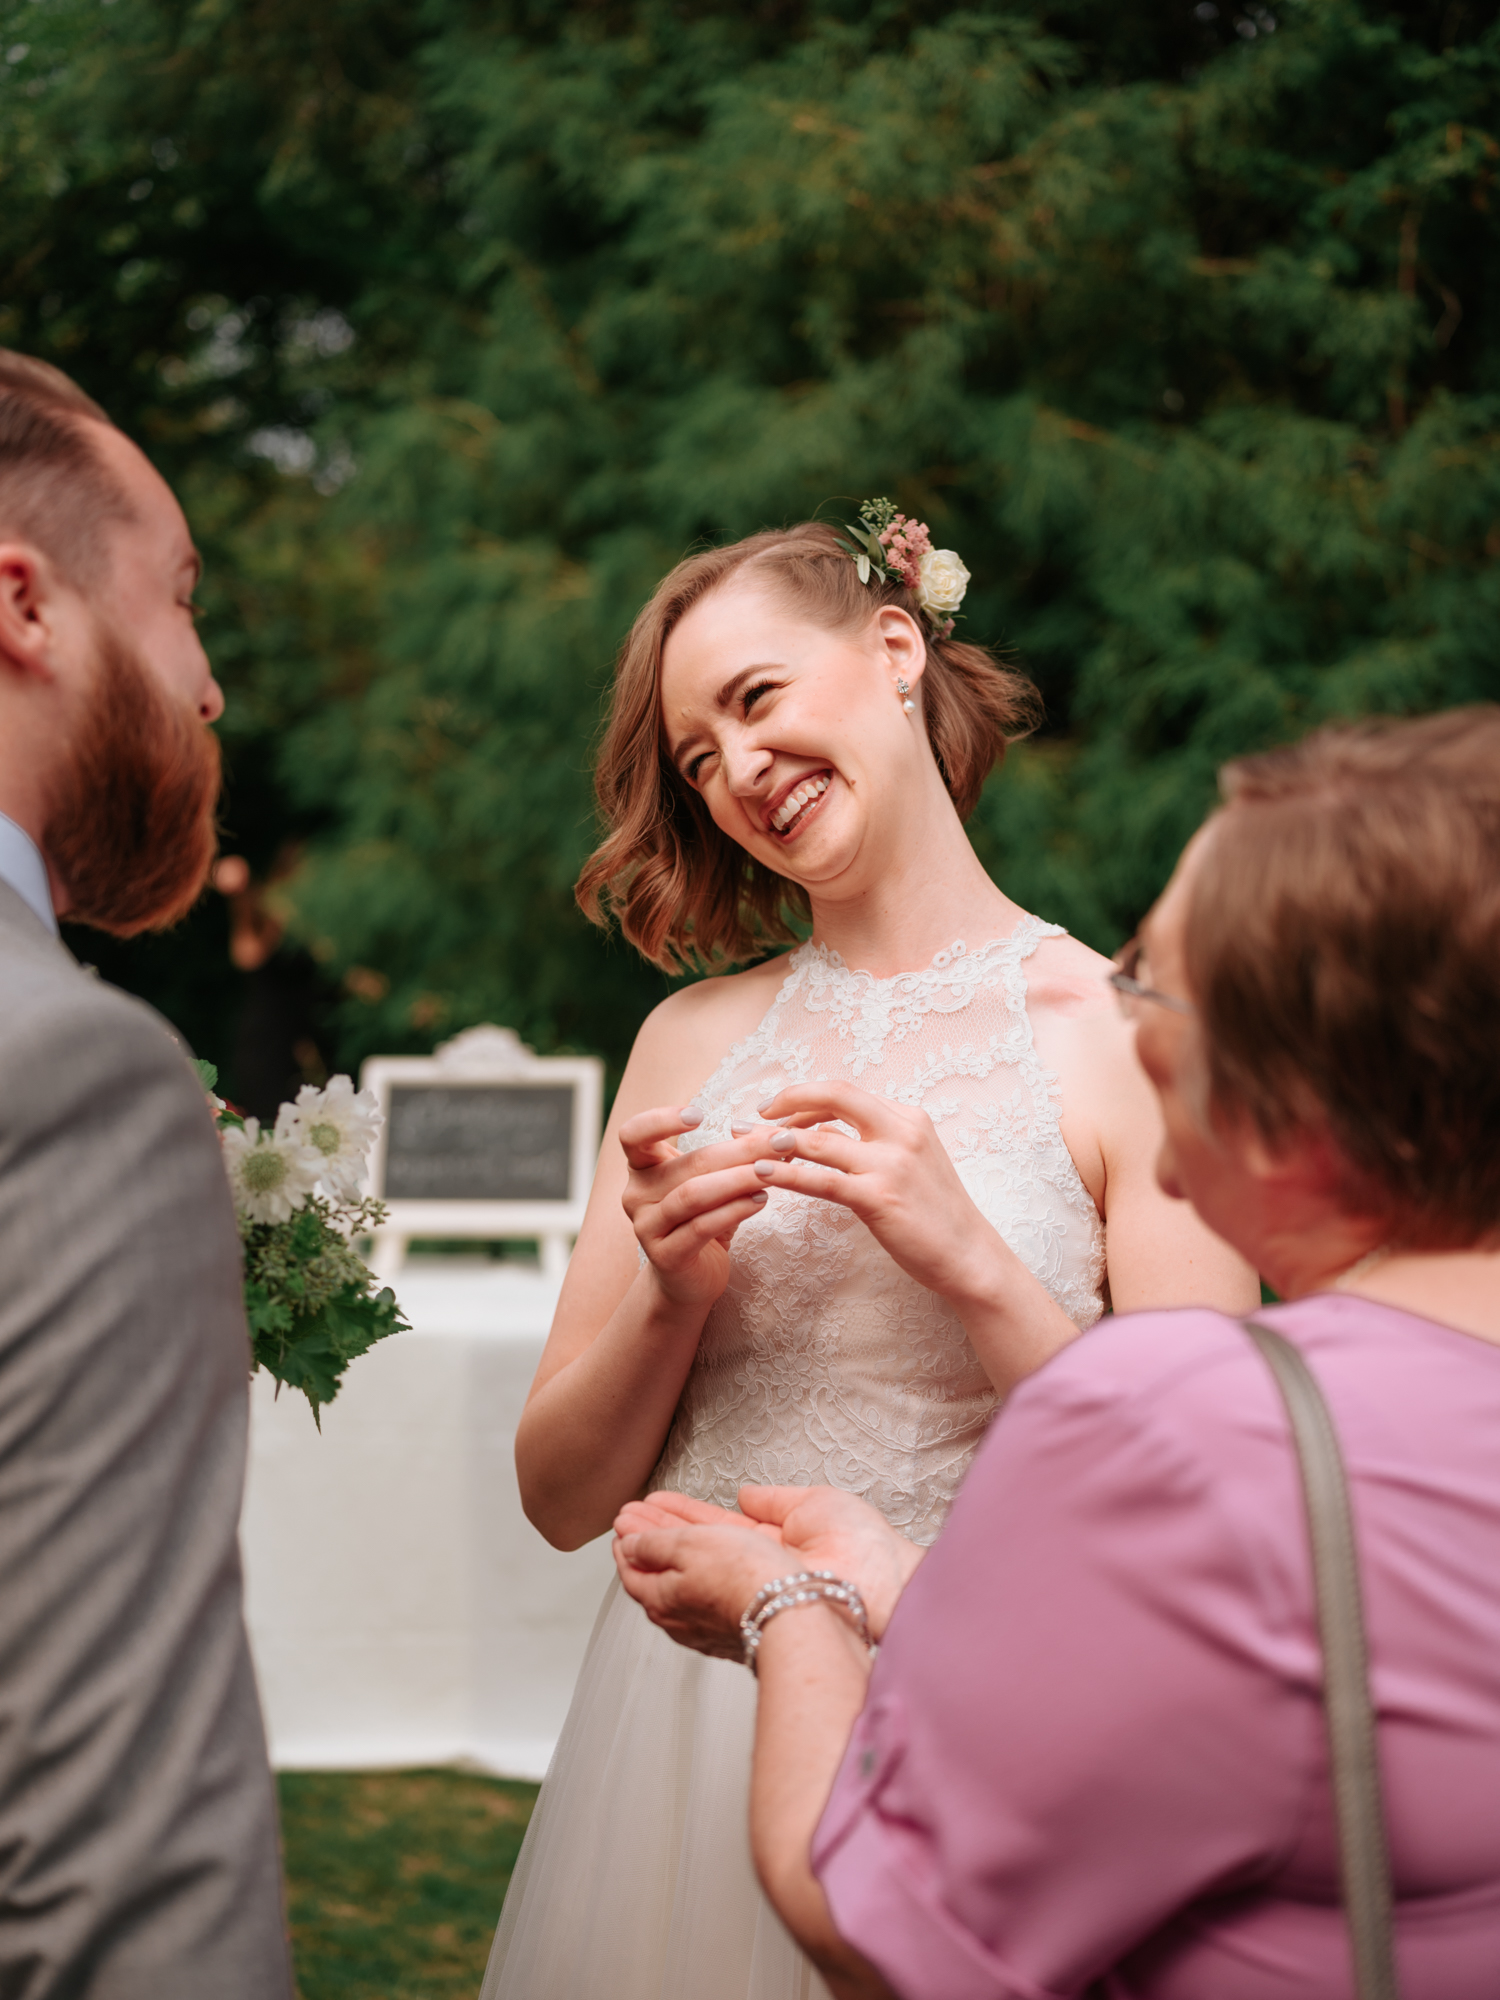 Stolen Glimpses Seattle Wedding Photographer Hidden Meadows Wedding 76.jpg